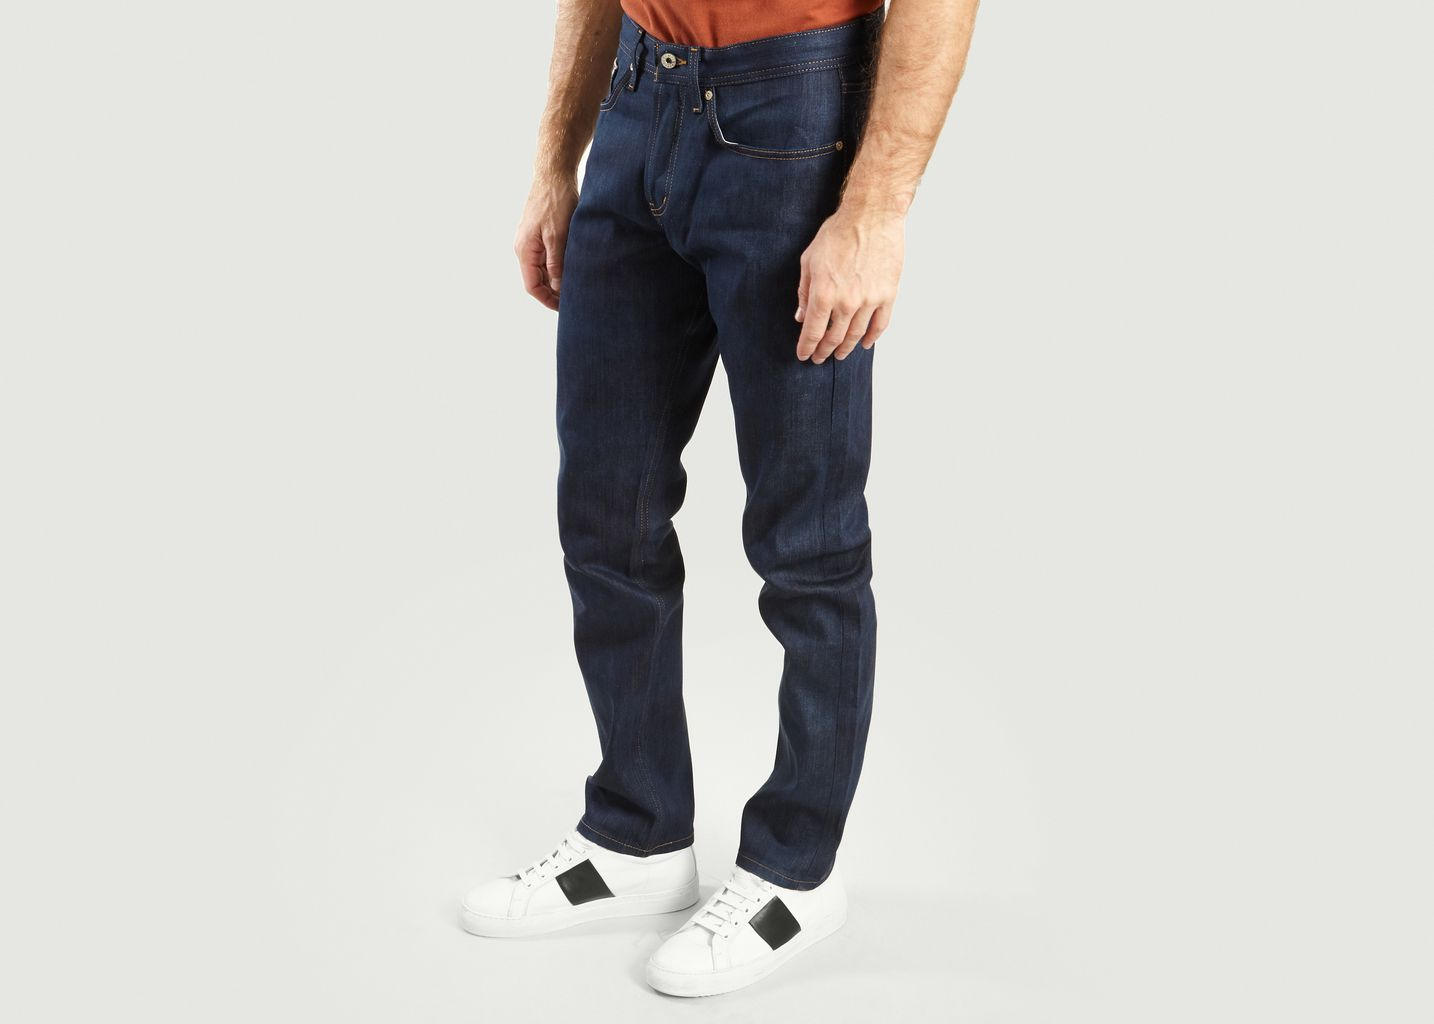 Jean Kasuri Weird Guy Selvedge - Naked and Famous